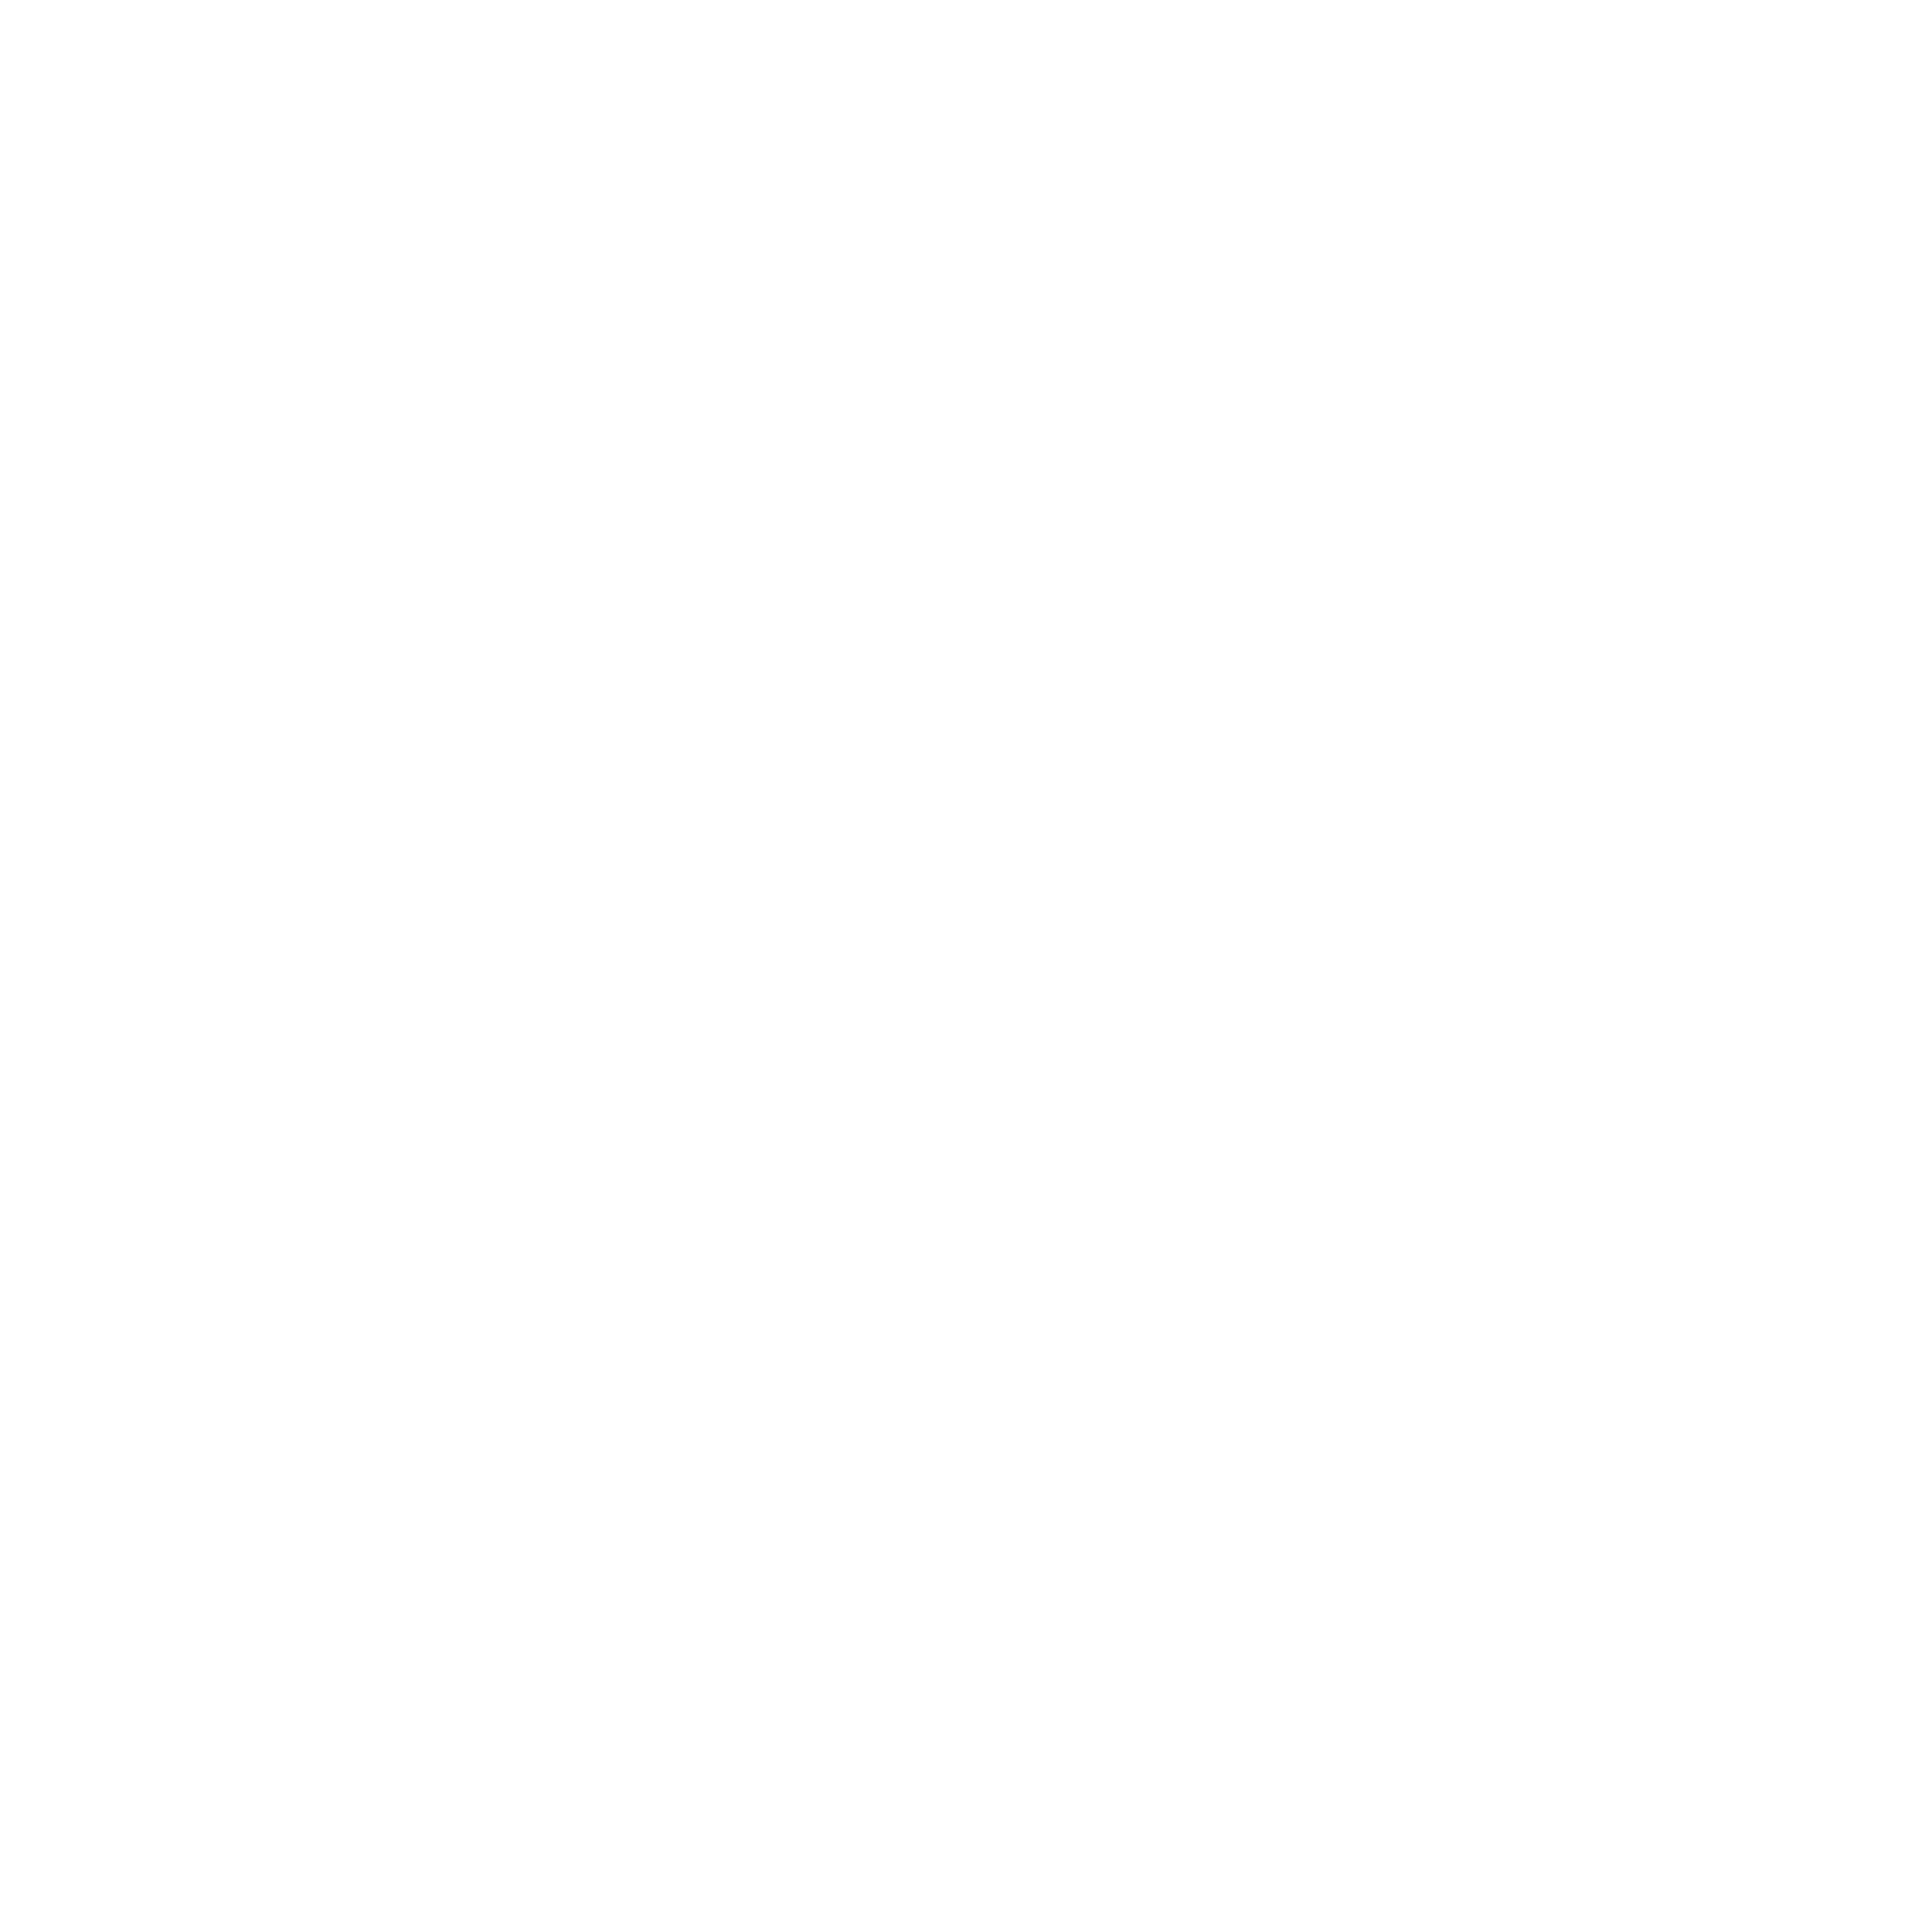 Samsung Logo PNG Transparent & SVG Vector - Freebie Supply